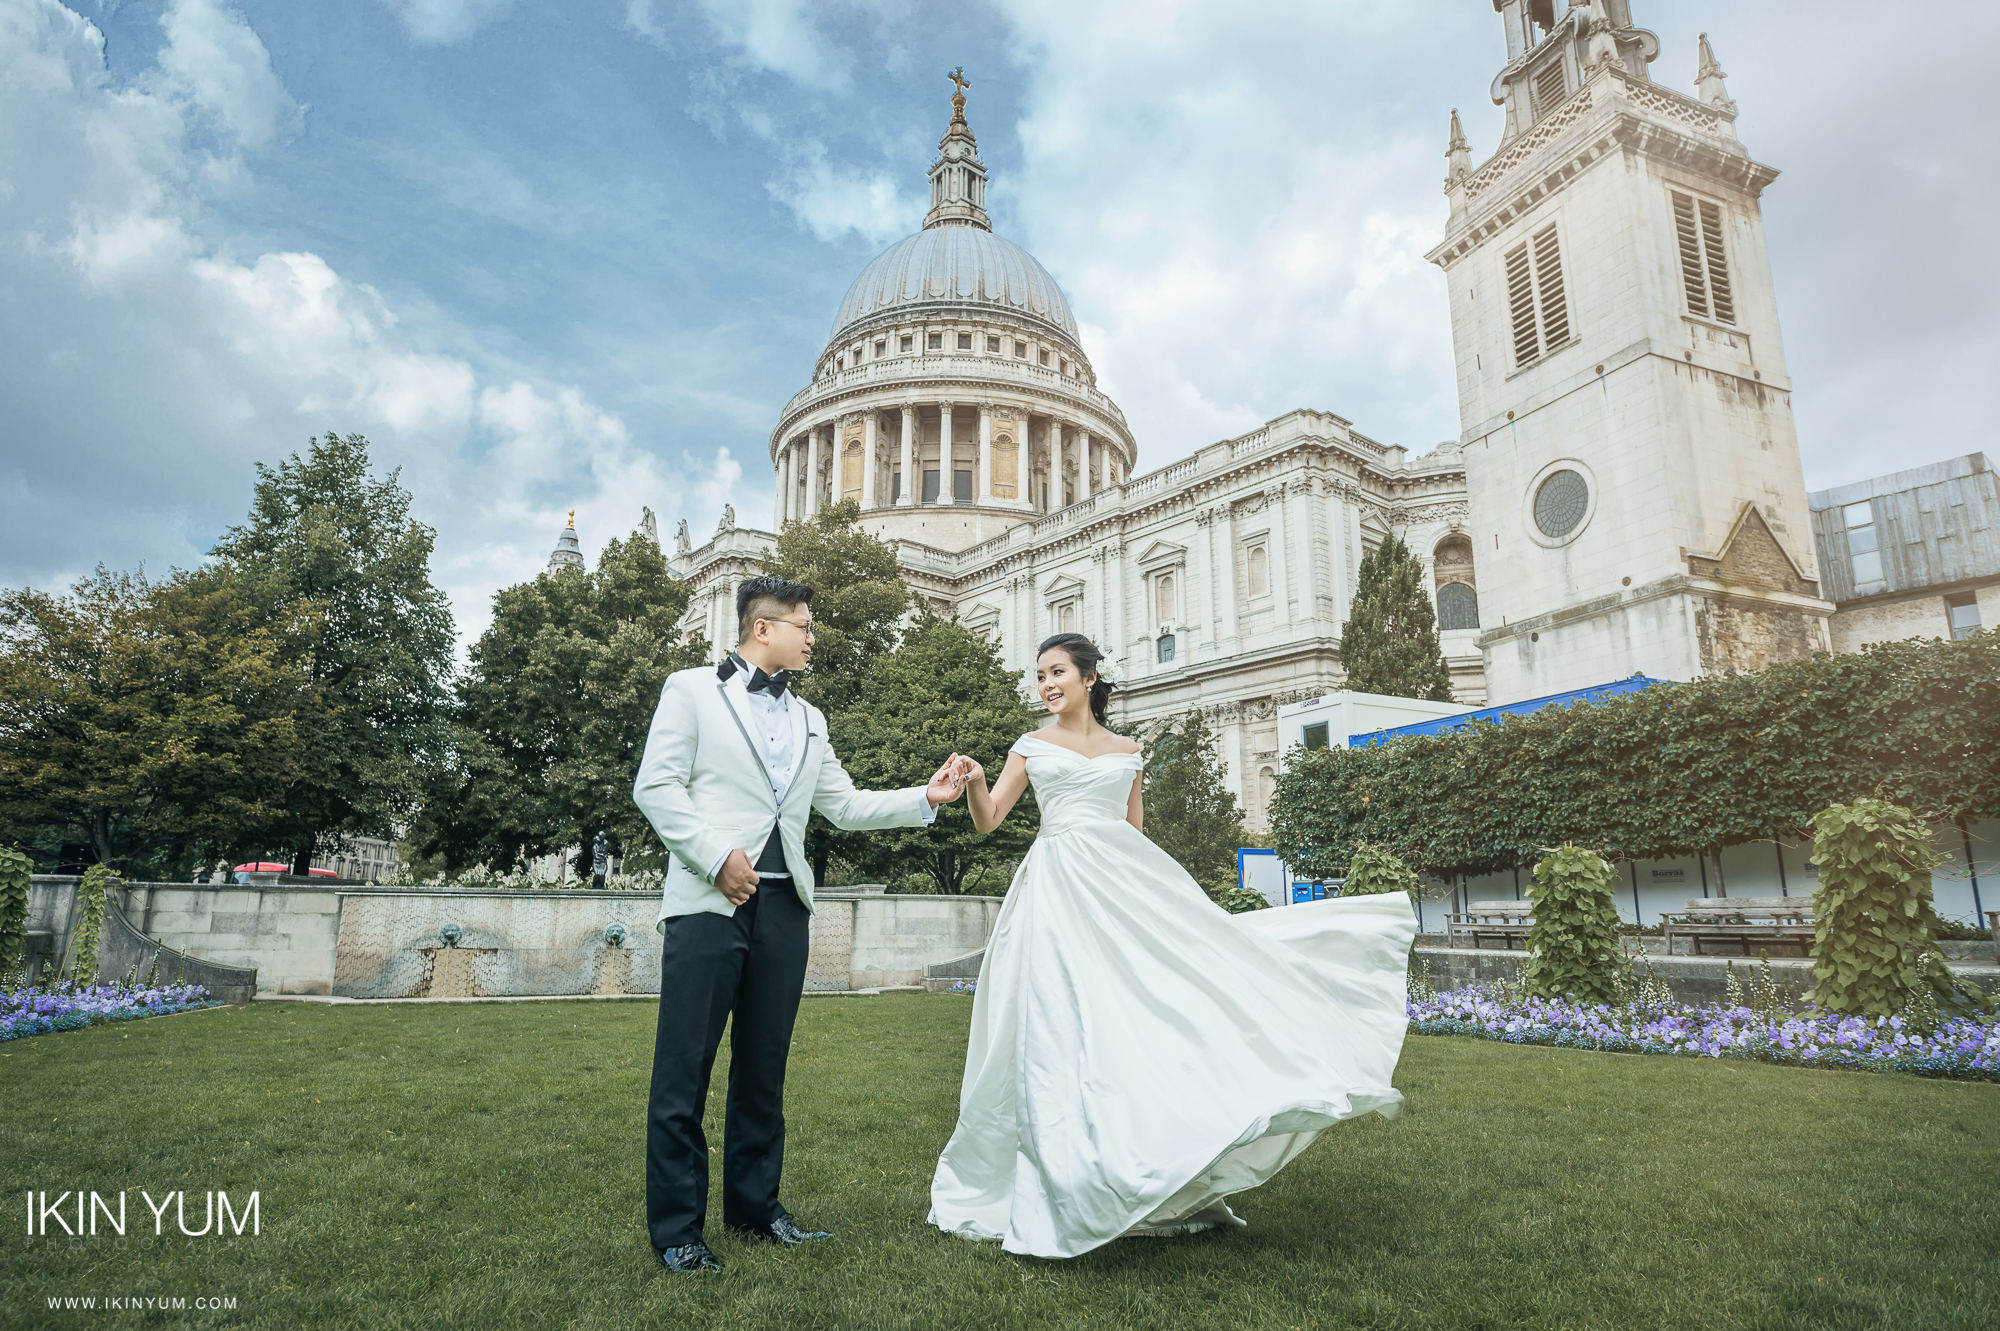 PRE-WEDDING SHOOT LONDON - IKIN YUM PHOTOGRAPHY